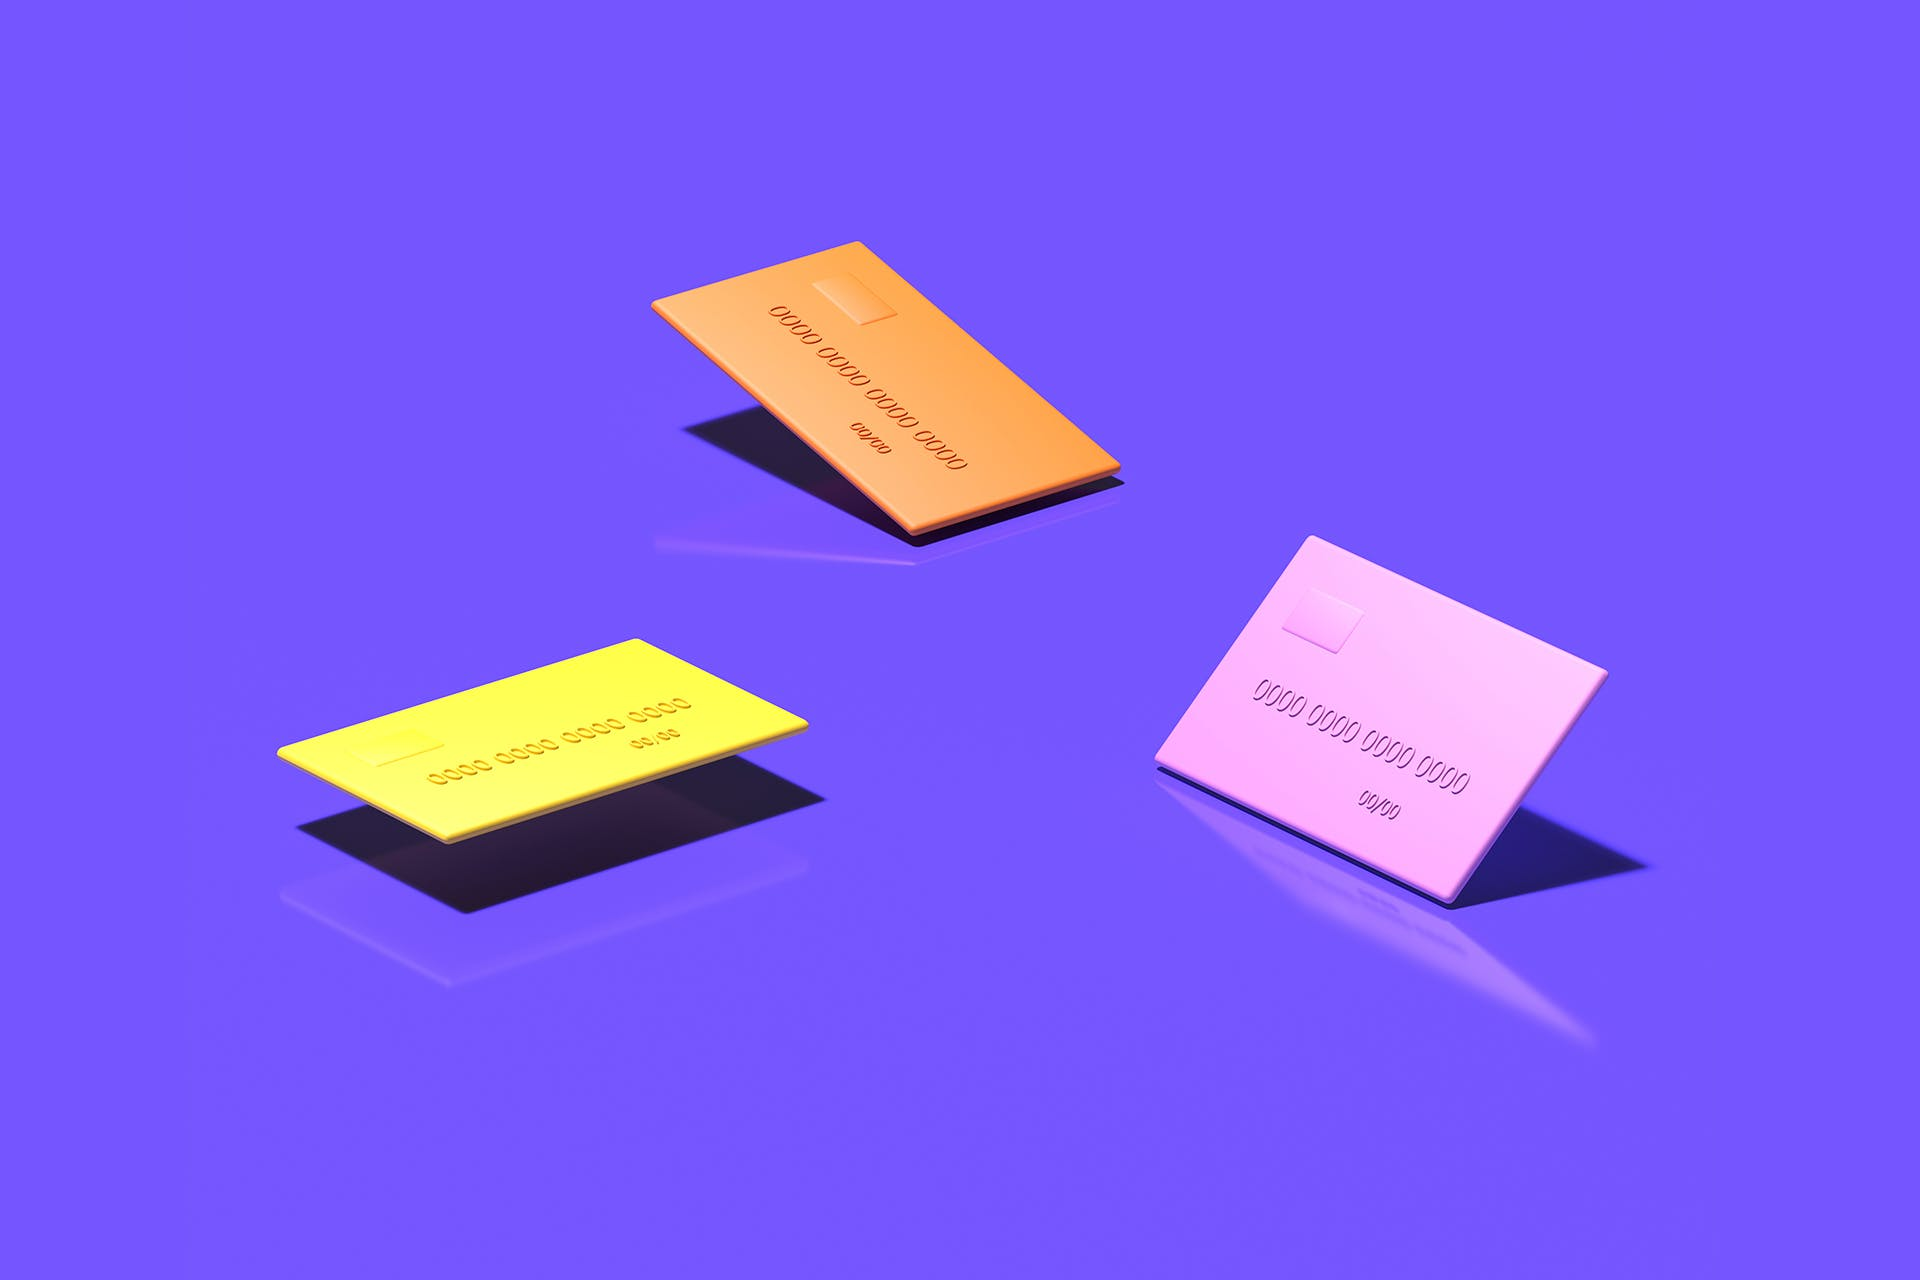 Three cartoon renderings of credit cards in pink, orange and yellow on a solid purple background. If your influencer marketing campaign is successful, then your customers are likely to pull out their credit cards for real.